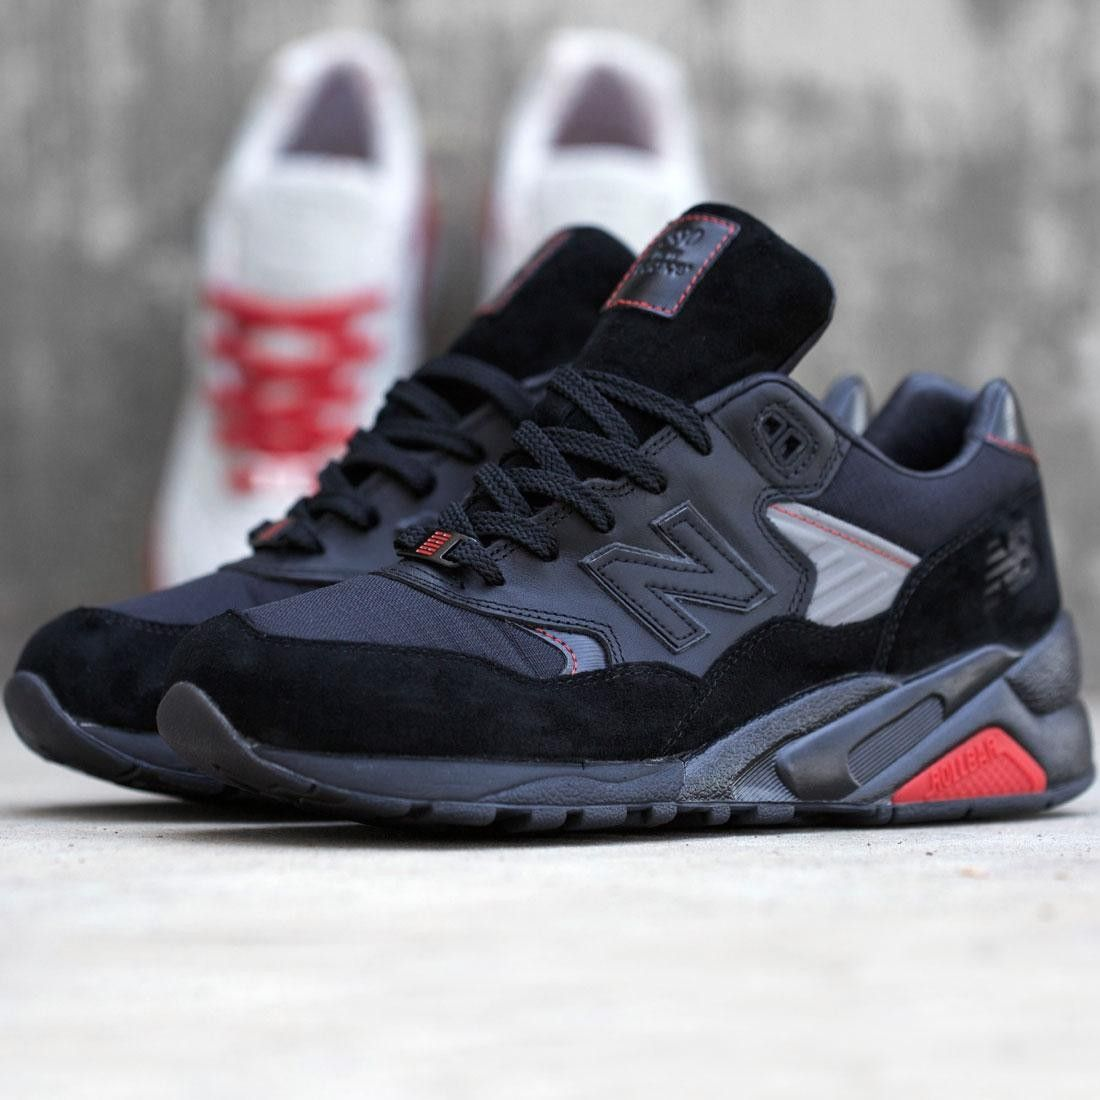 BAIT x G.I. Joe x New Balance Men MT580GI1 - Snake Eyes (black)